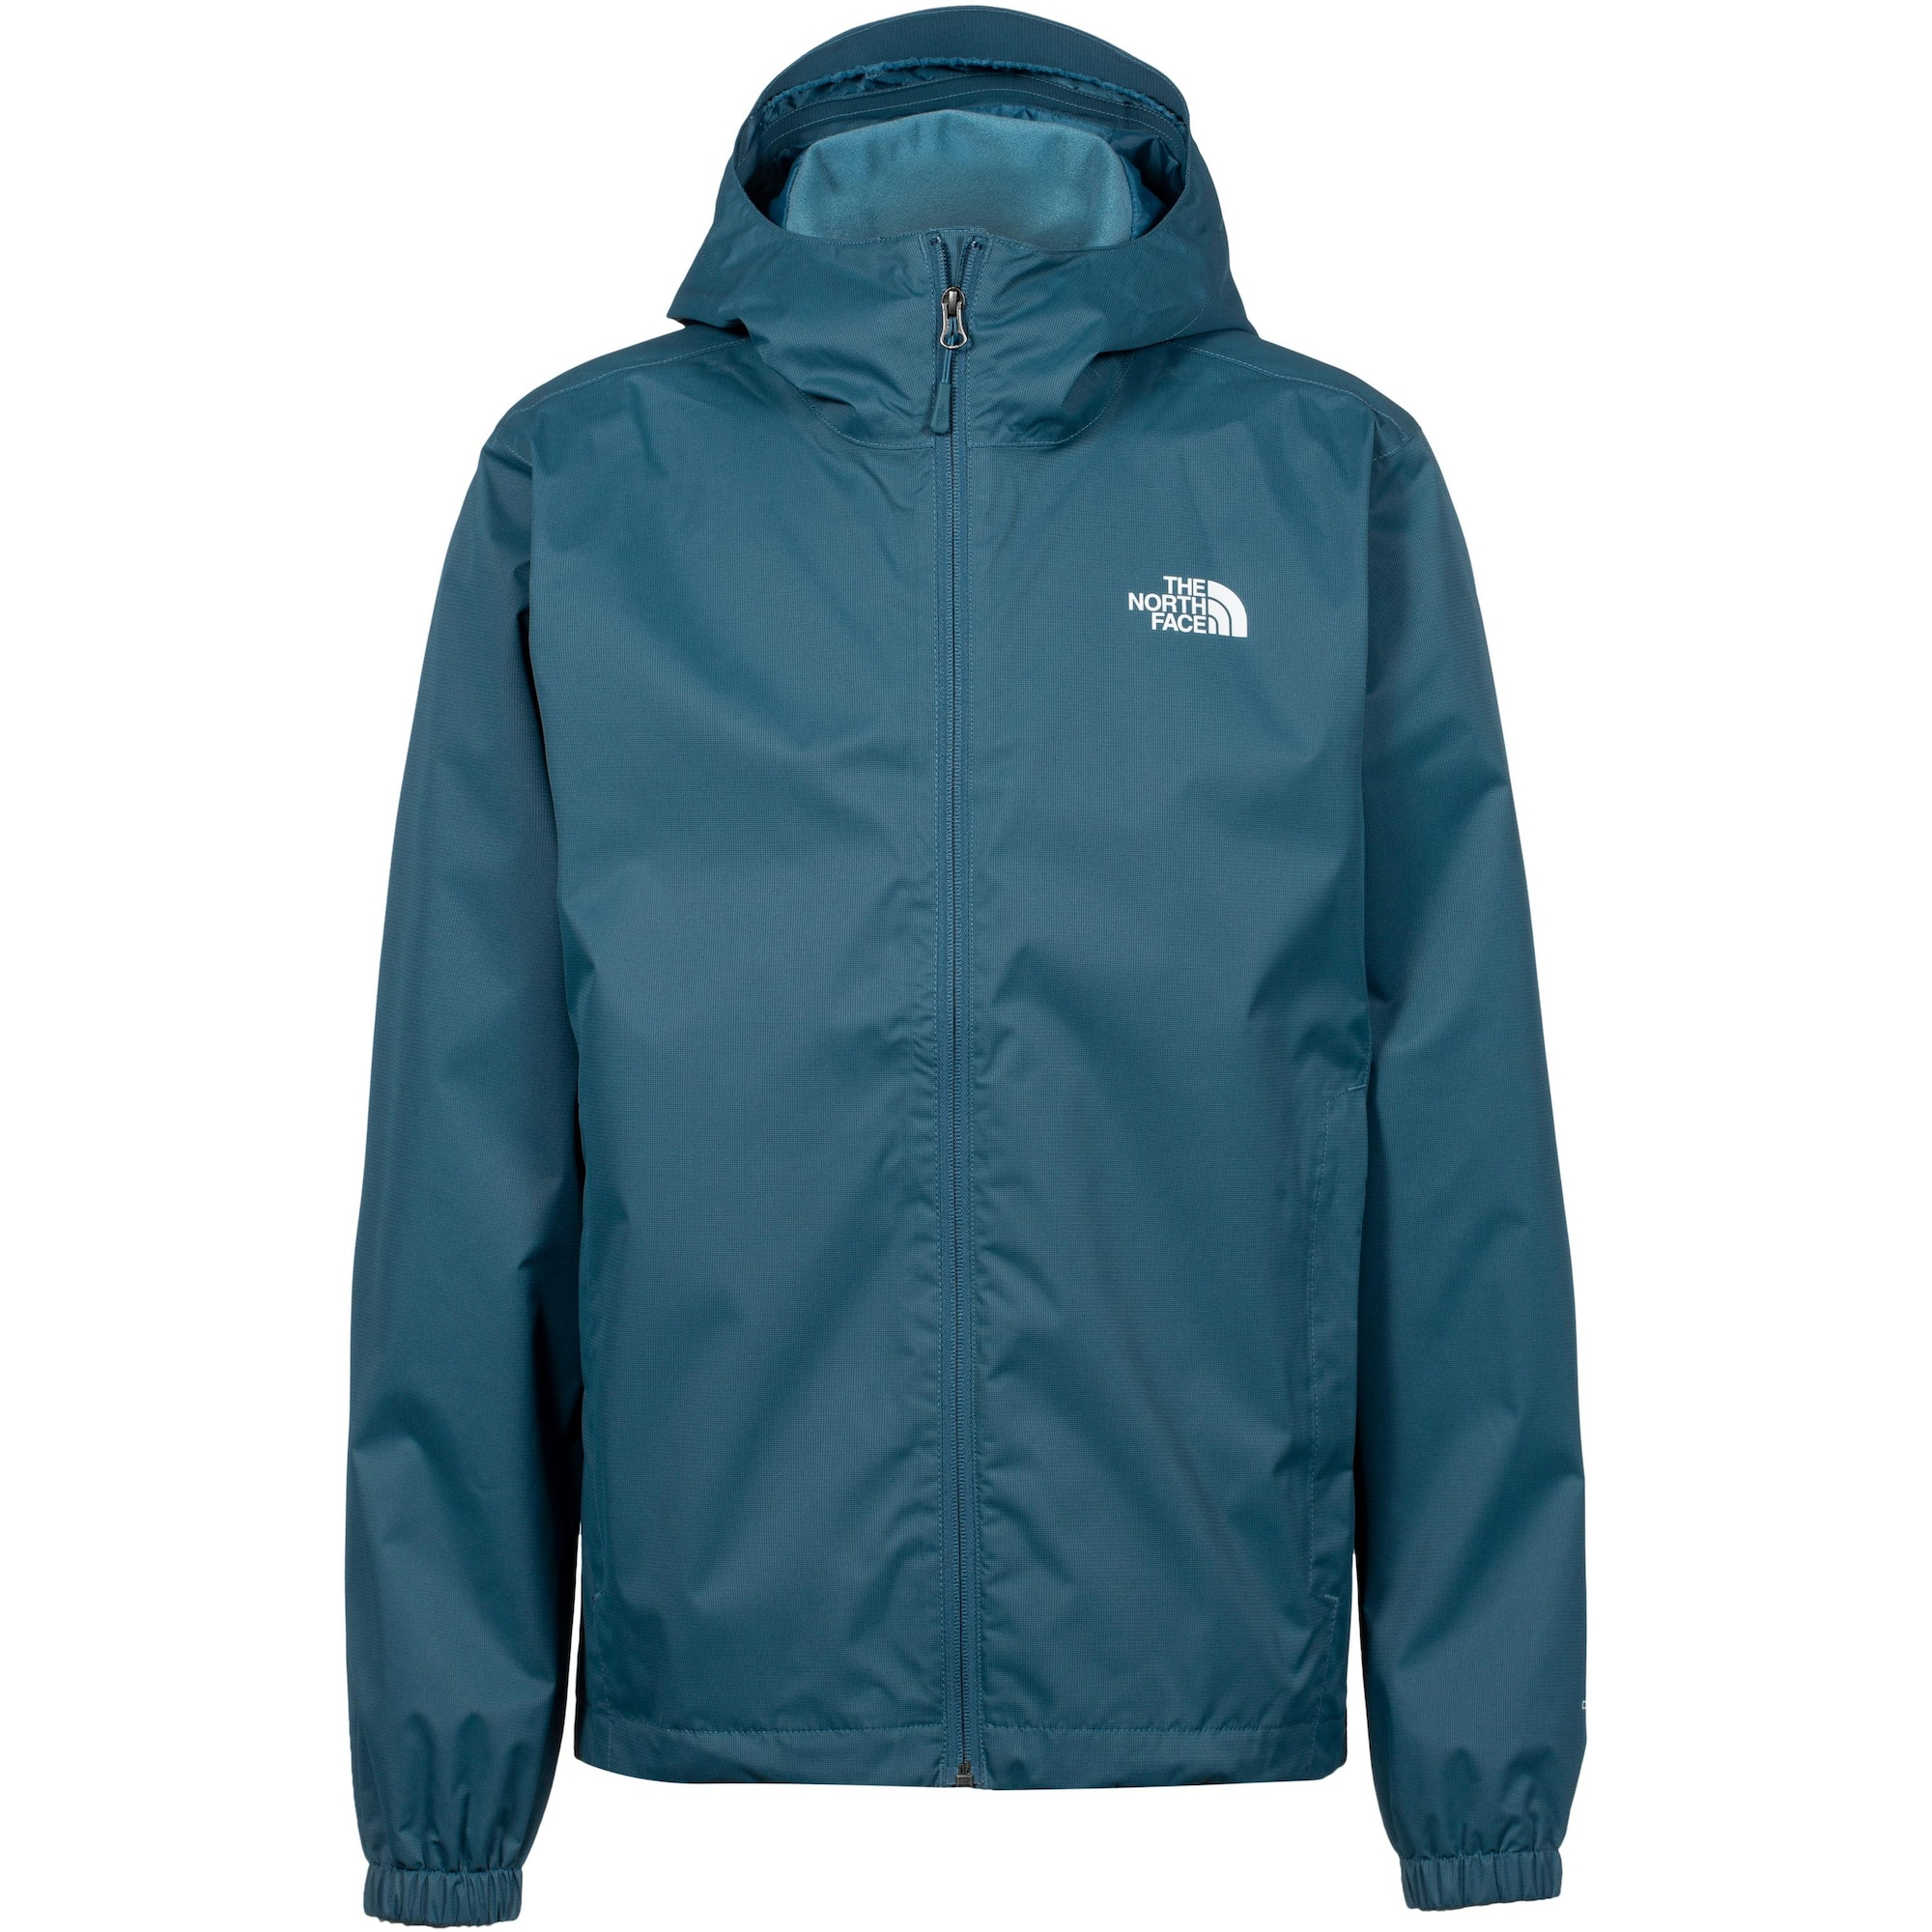 the north face - Regenjacke 'Quest'